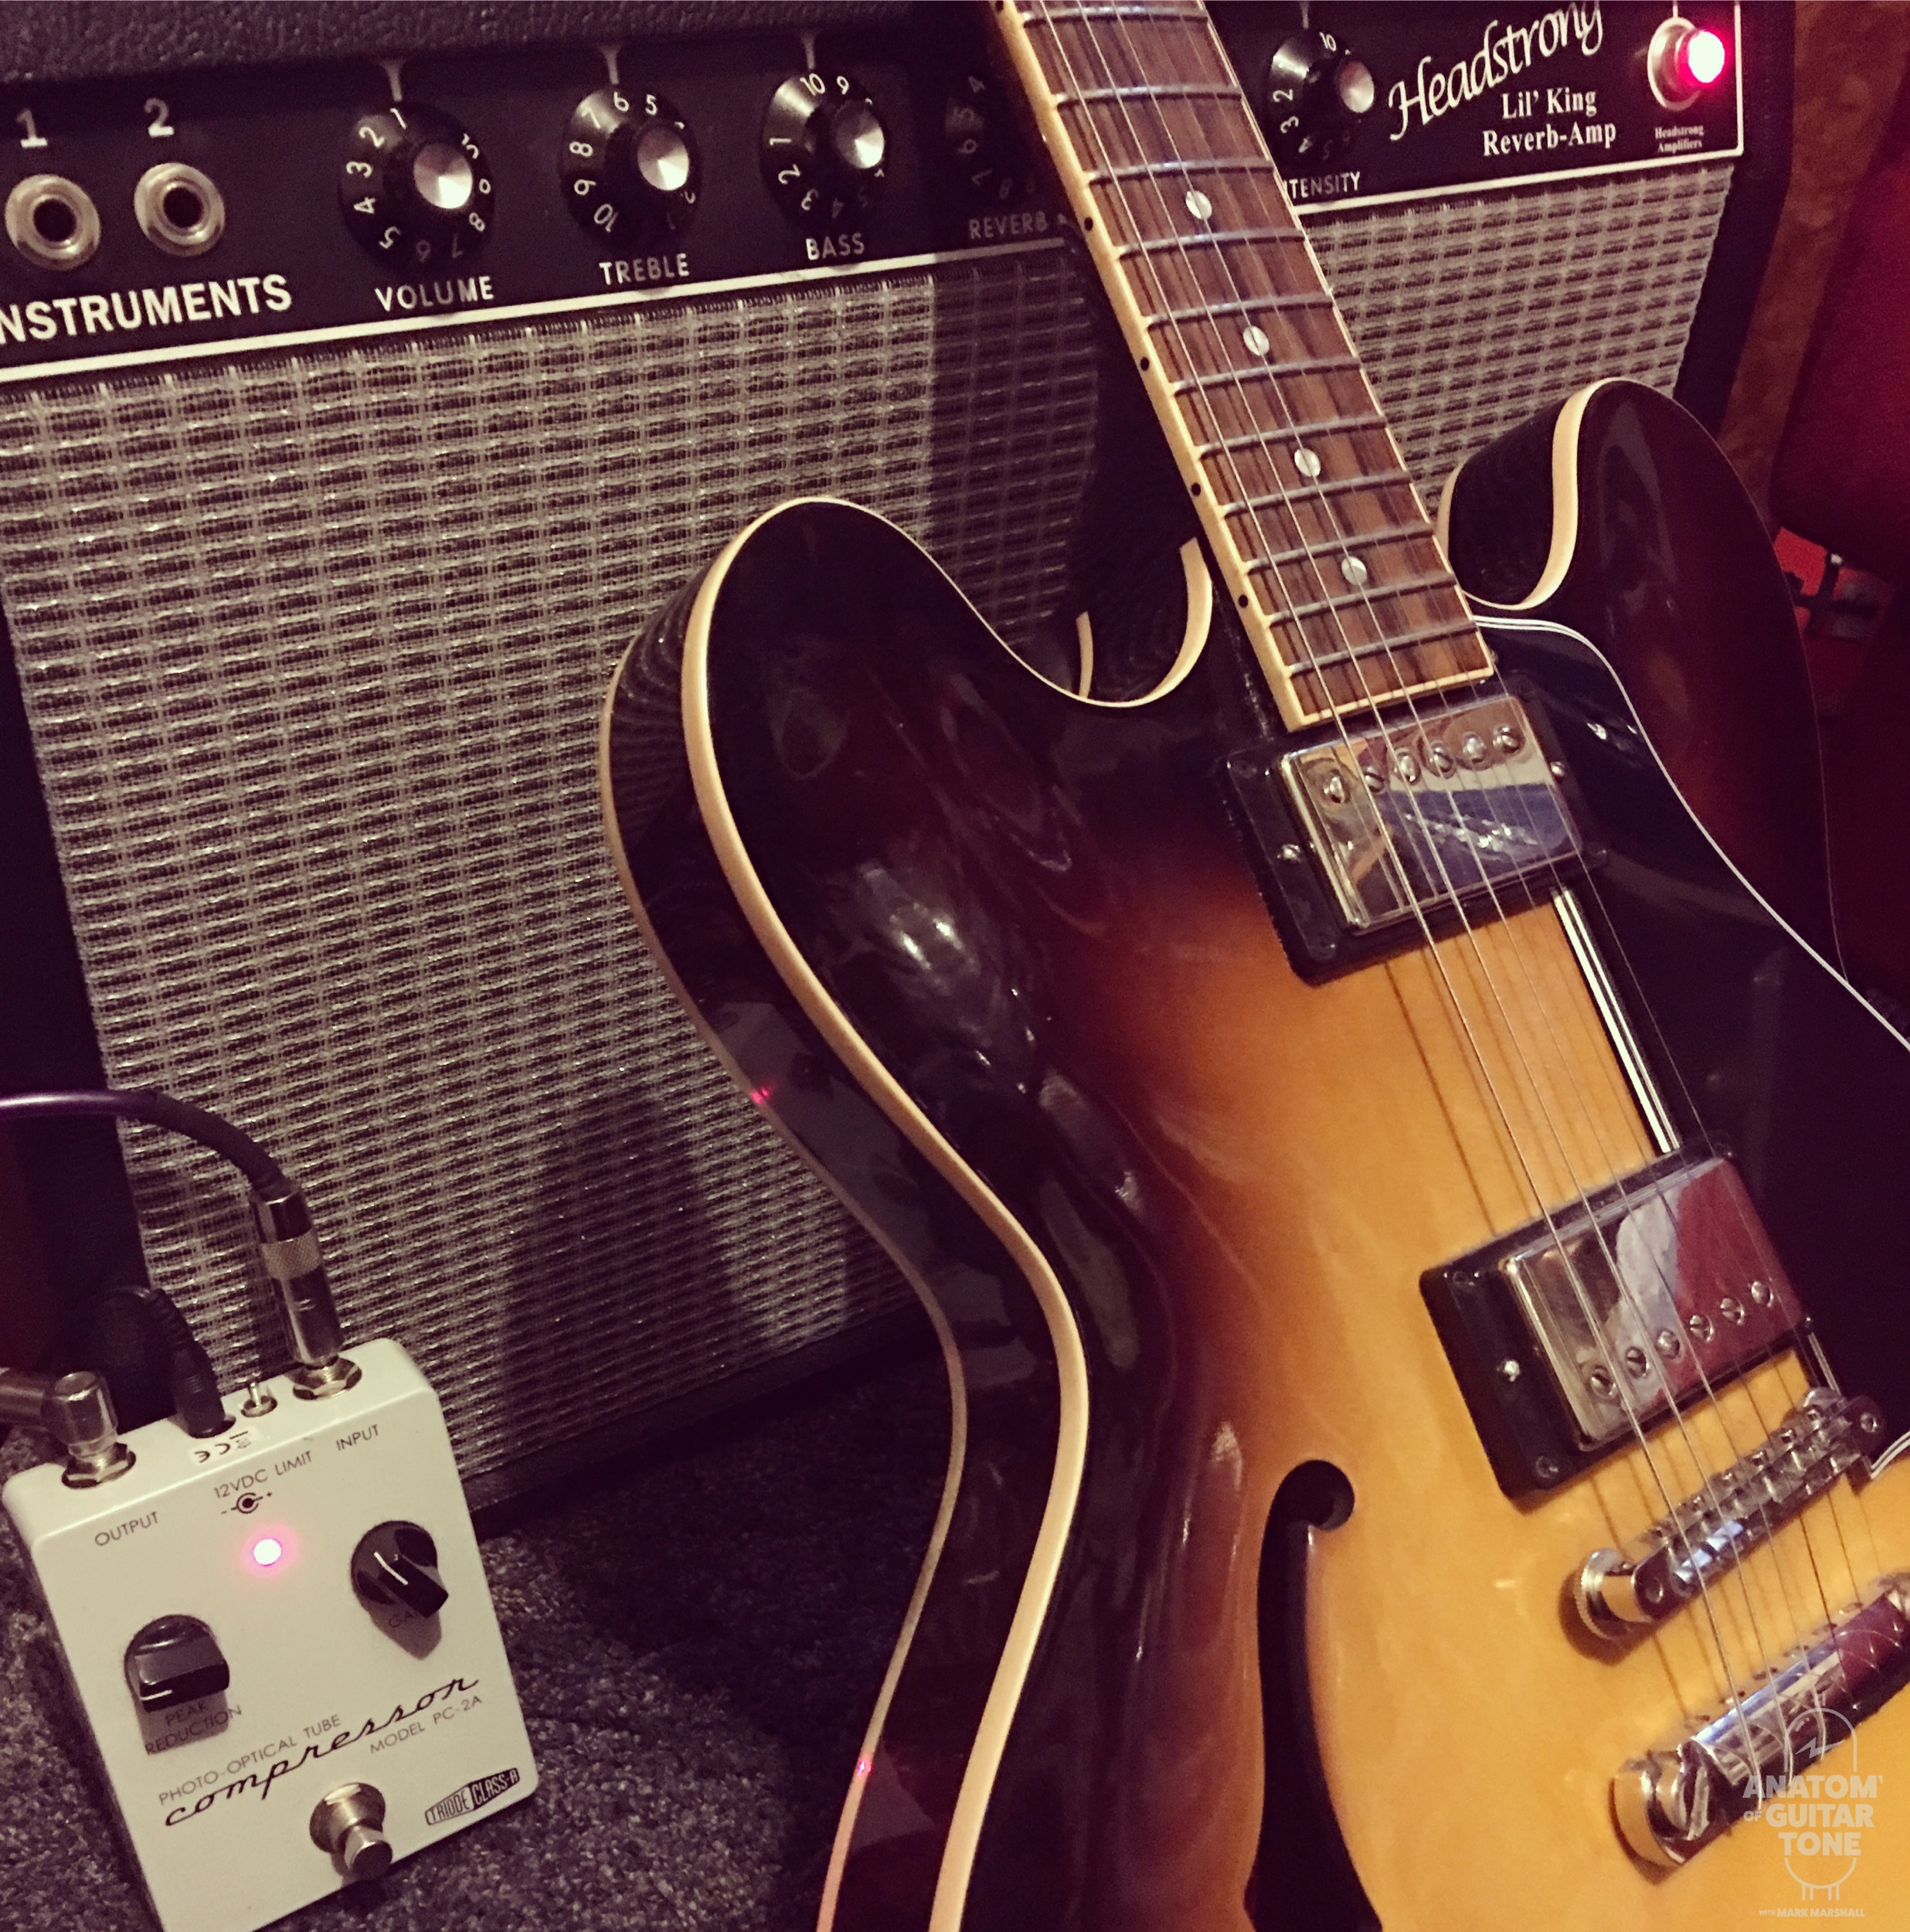 Gibson' ES-335 with Florence pickups, Effectrode PC-2A and Headstrong Lil King Reverb